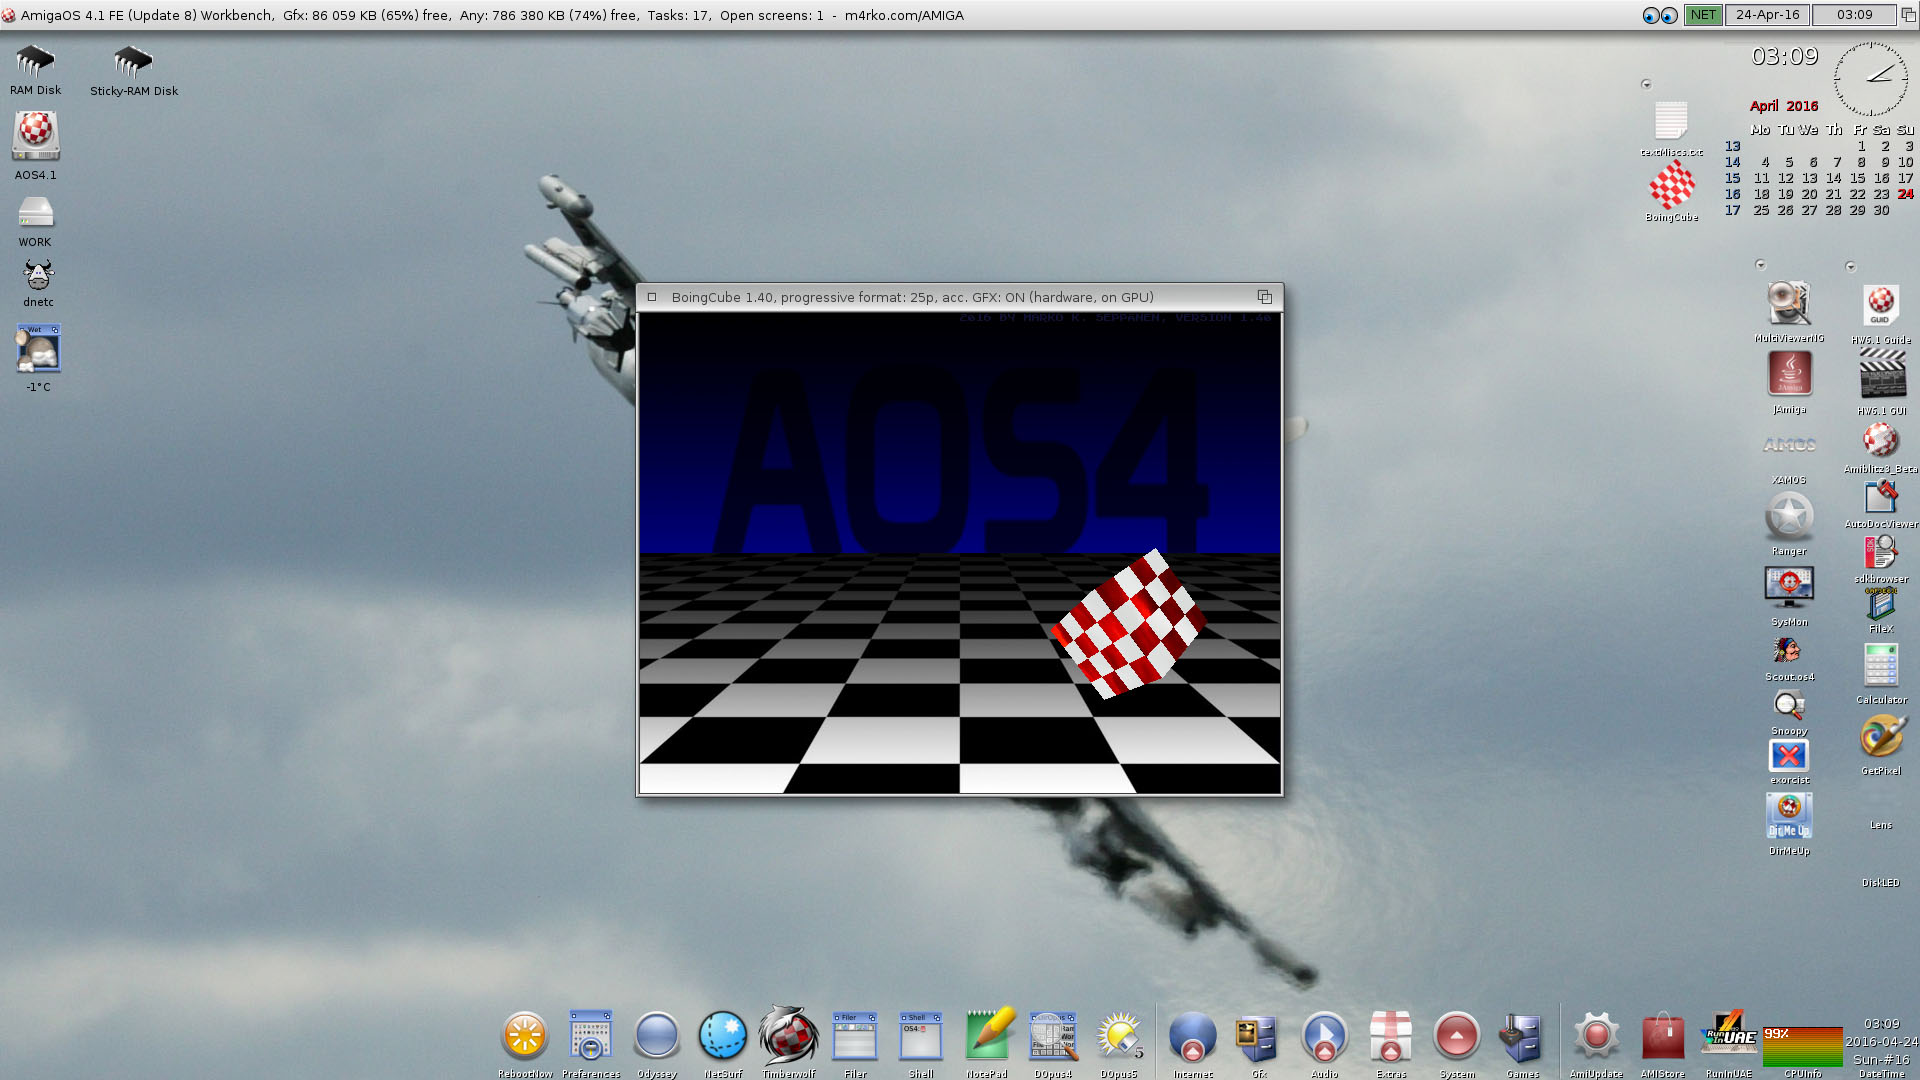 AmigaOS 4.1 FE Workbench-BoingCube-1.40